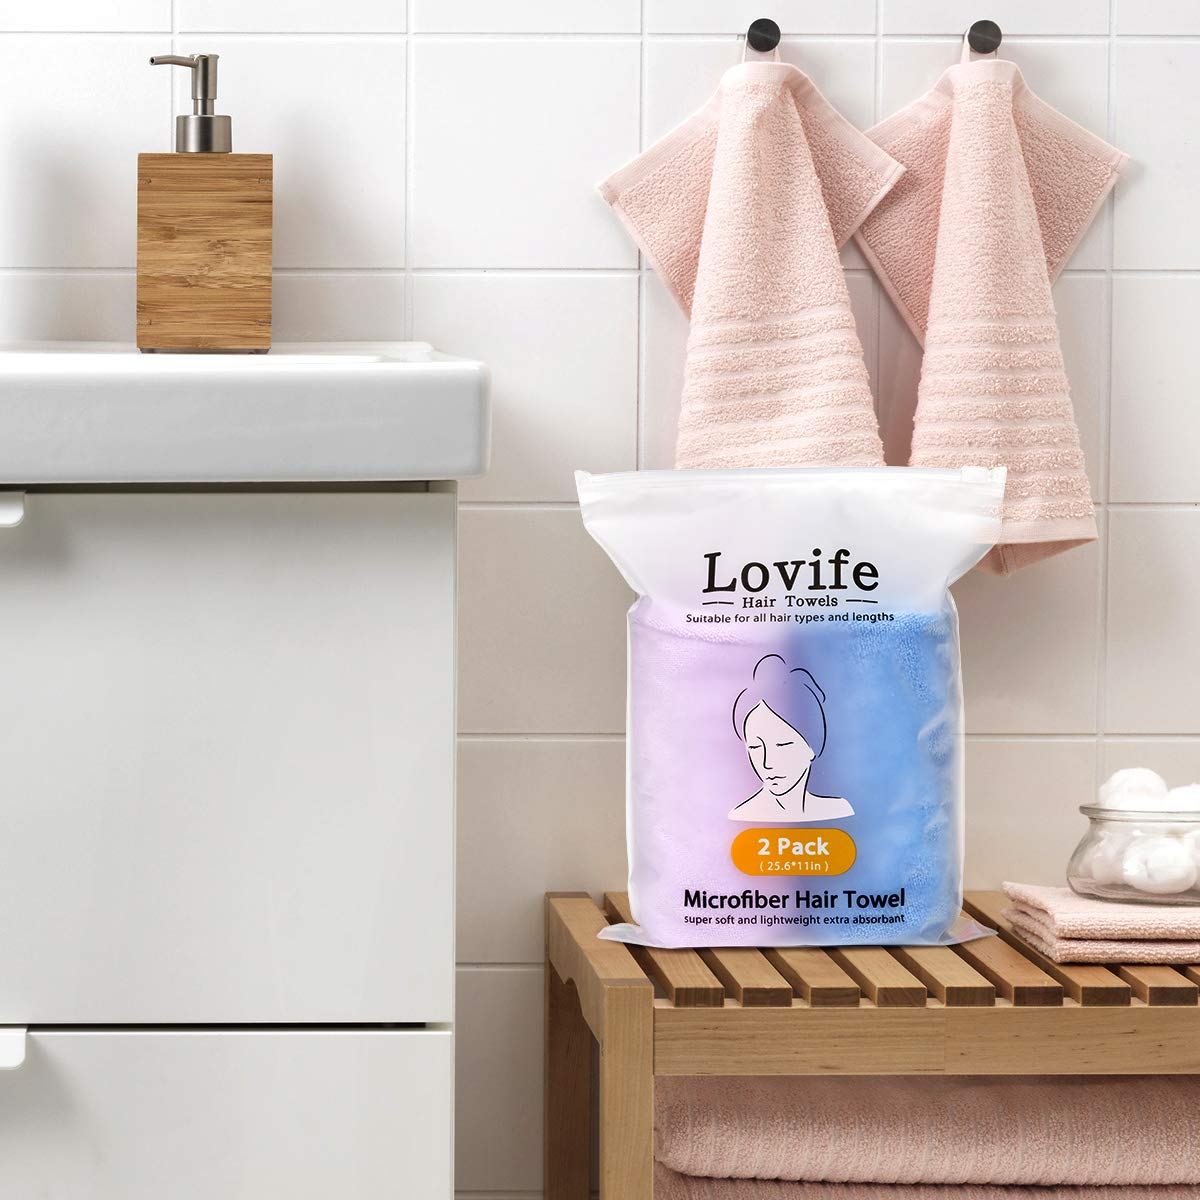 Lovife Microfiber Hair Towel Wrap 2 Pack Quick Drying Towels Hair Drying Turban Towel with Button Absorbent Cap for Long & Curly Hair Anti-Frizz